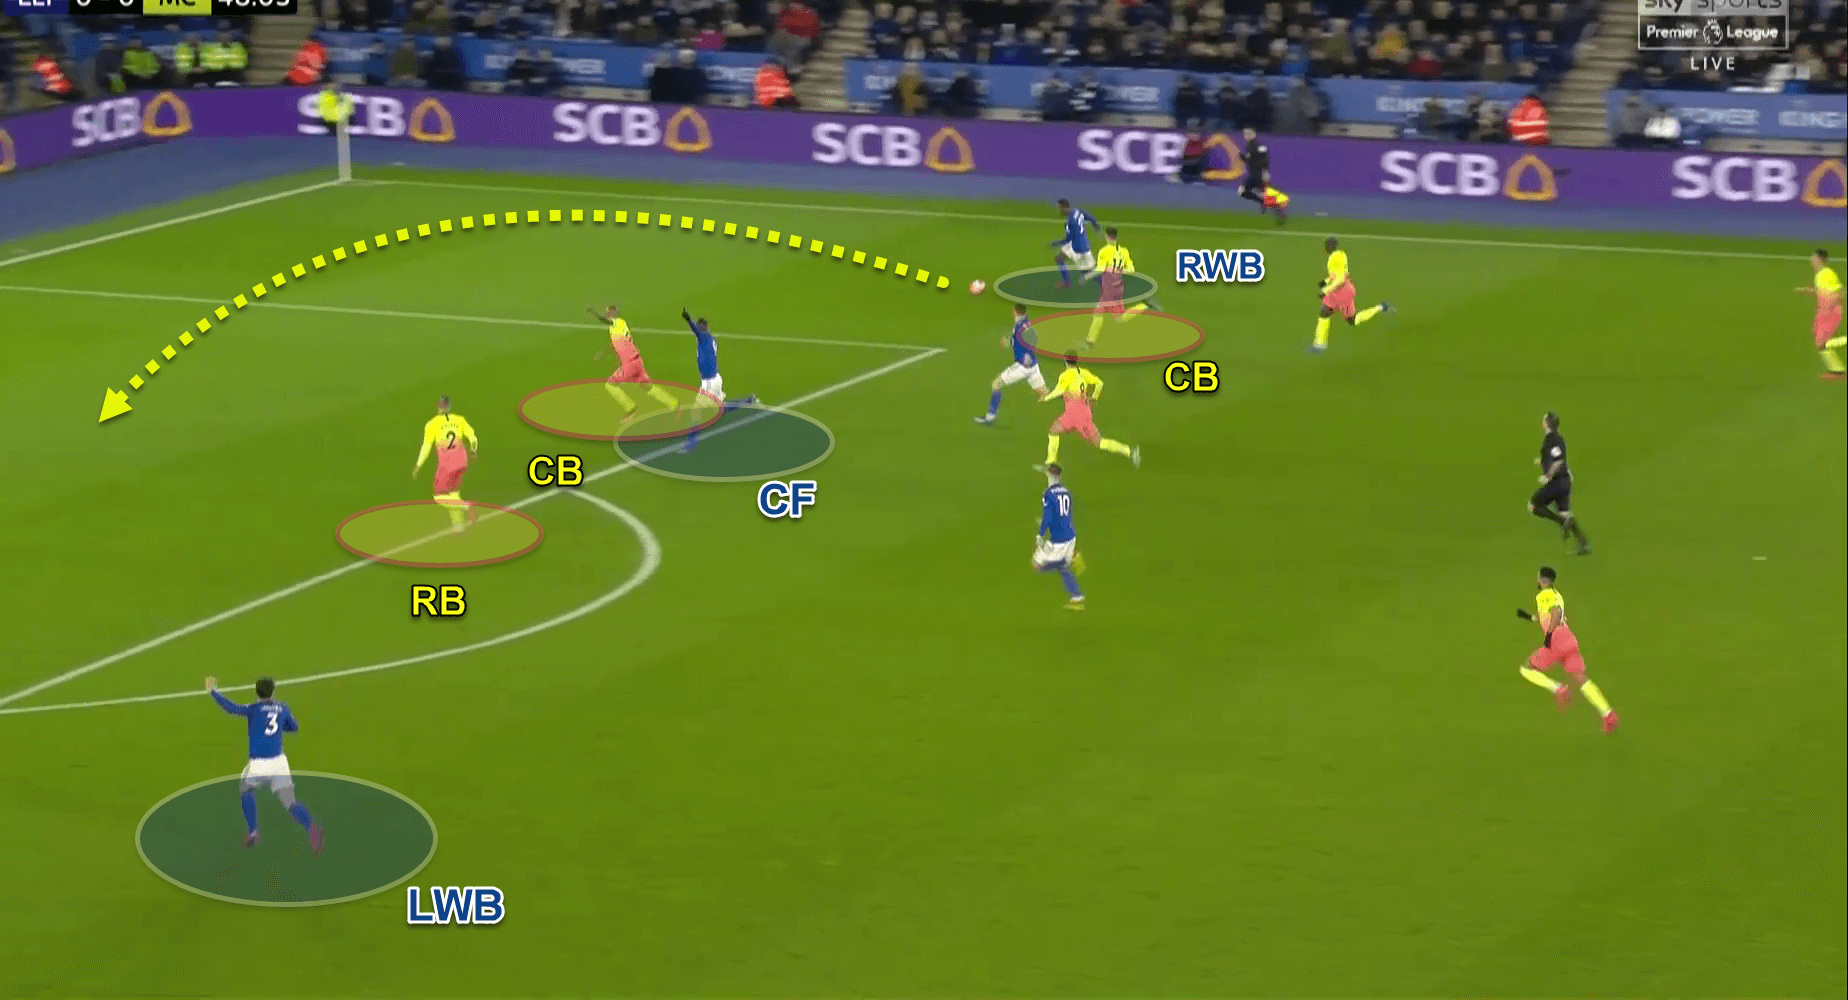 Premier League 2019/20: Leicester City v Manchester City - tactical analysis tactics